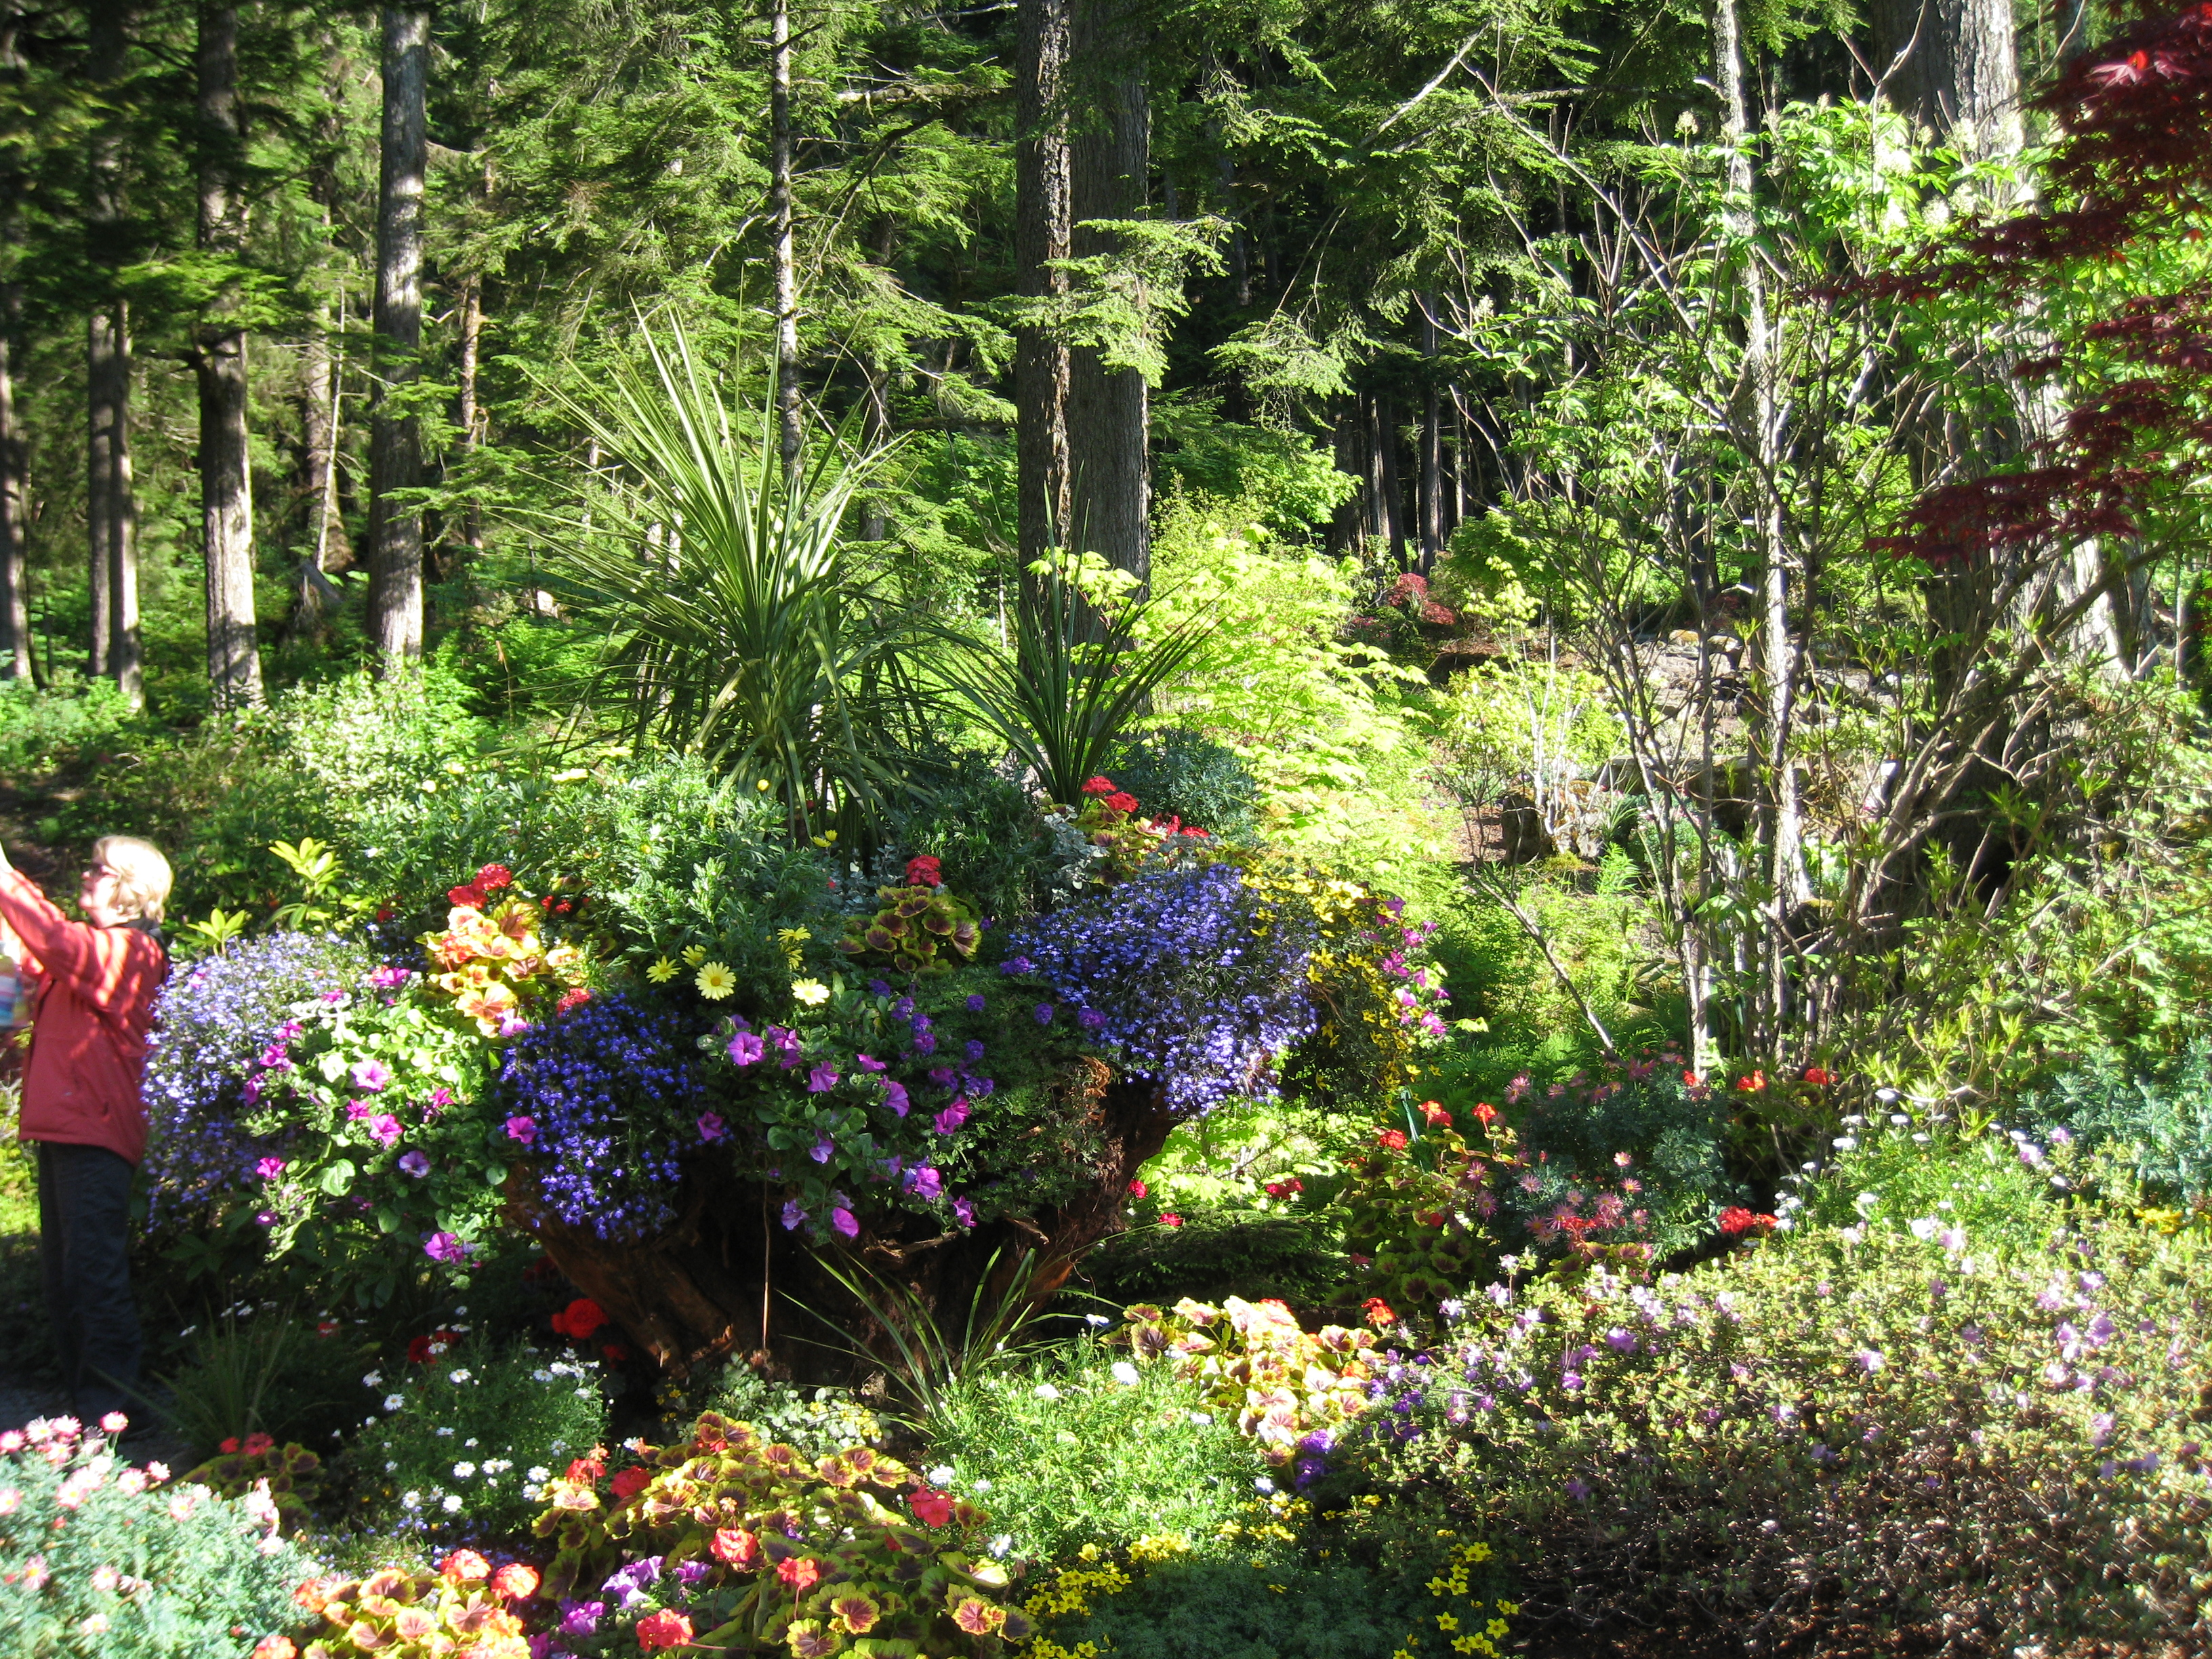 file glacier gardens outside juneau features plantings in